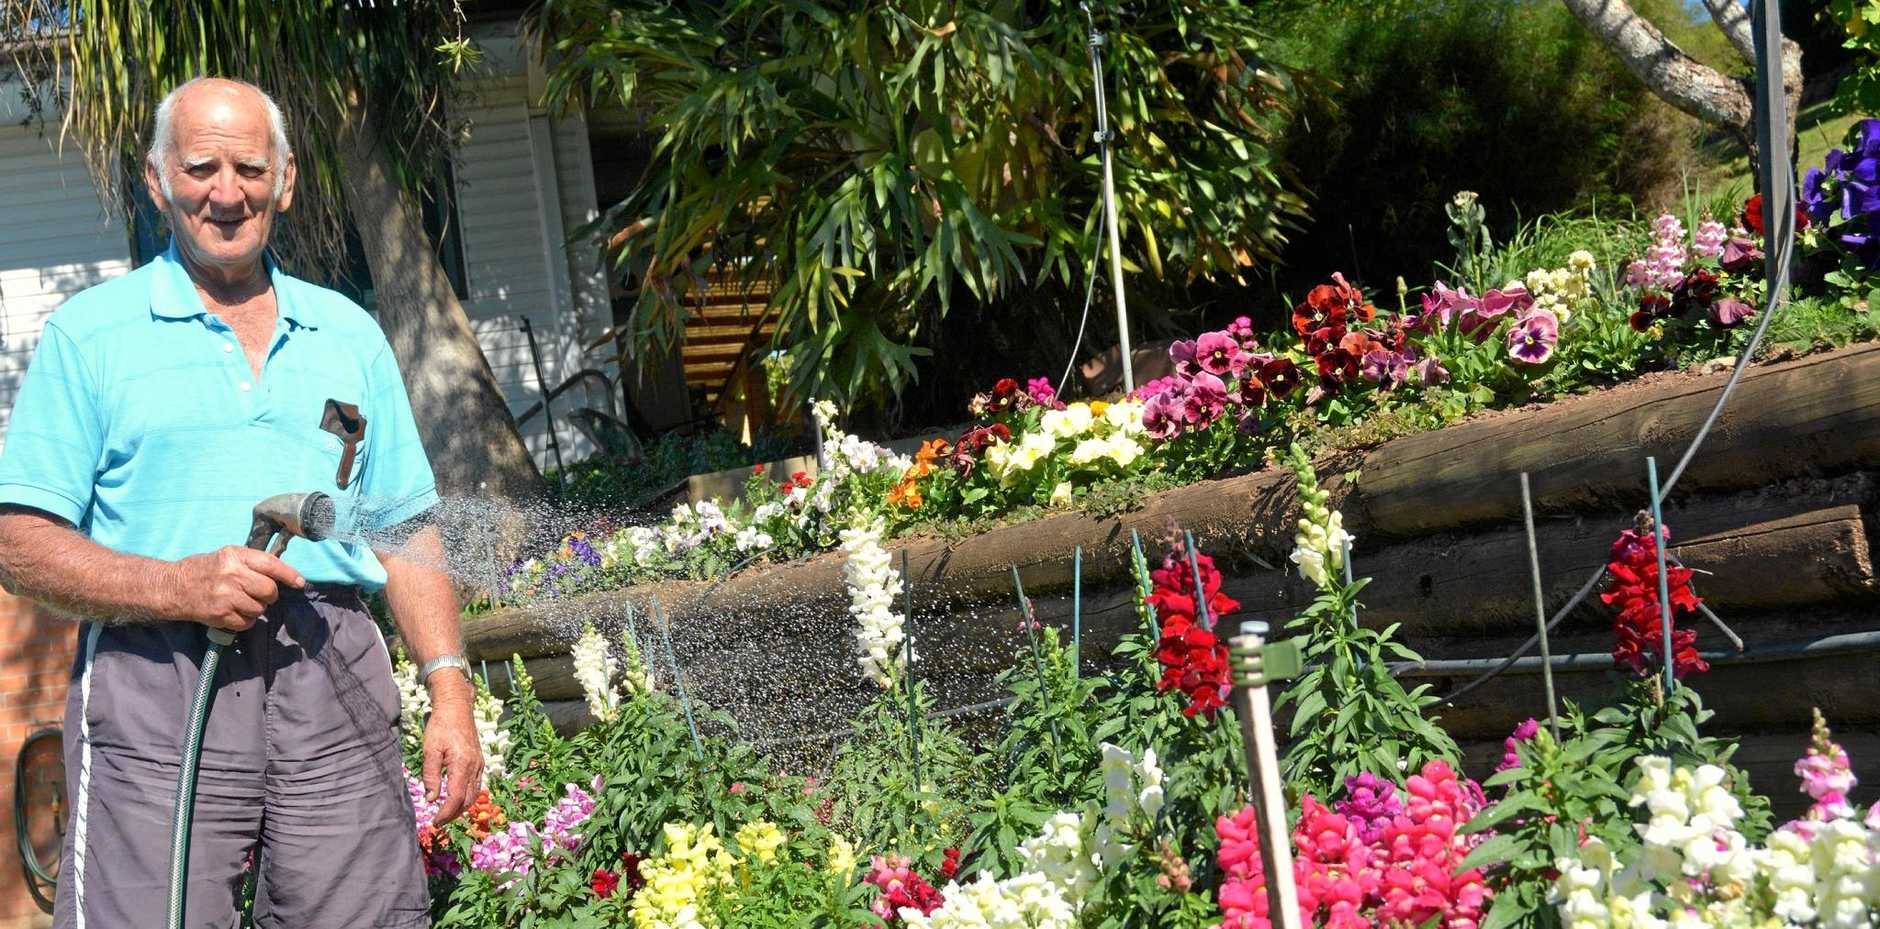 BLOOMING IN COLOUR: Ted Chilcott tends to his bed of mixed flowers.